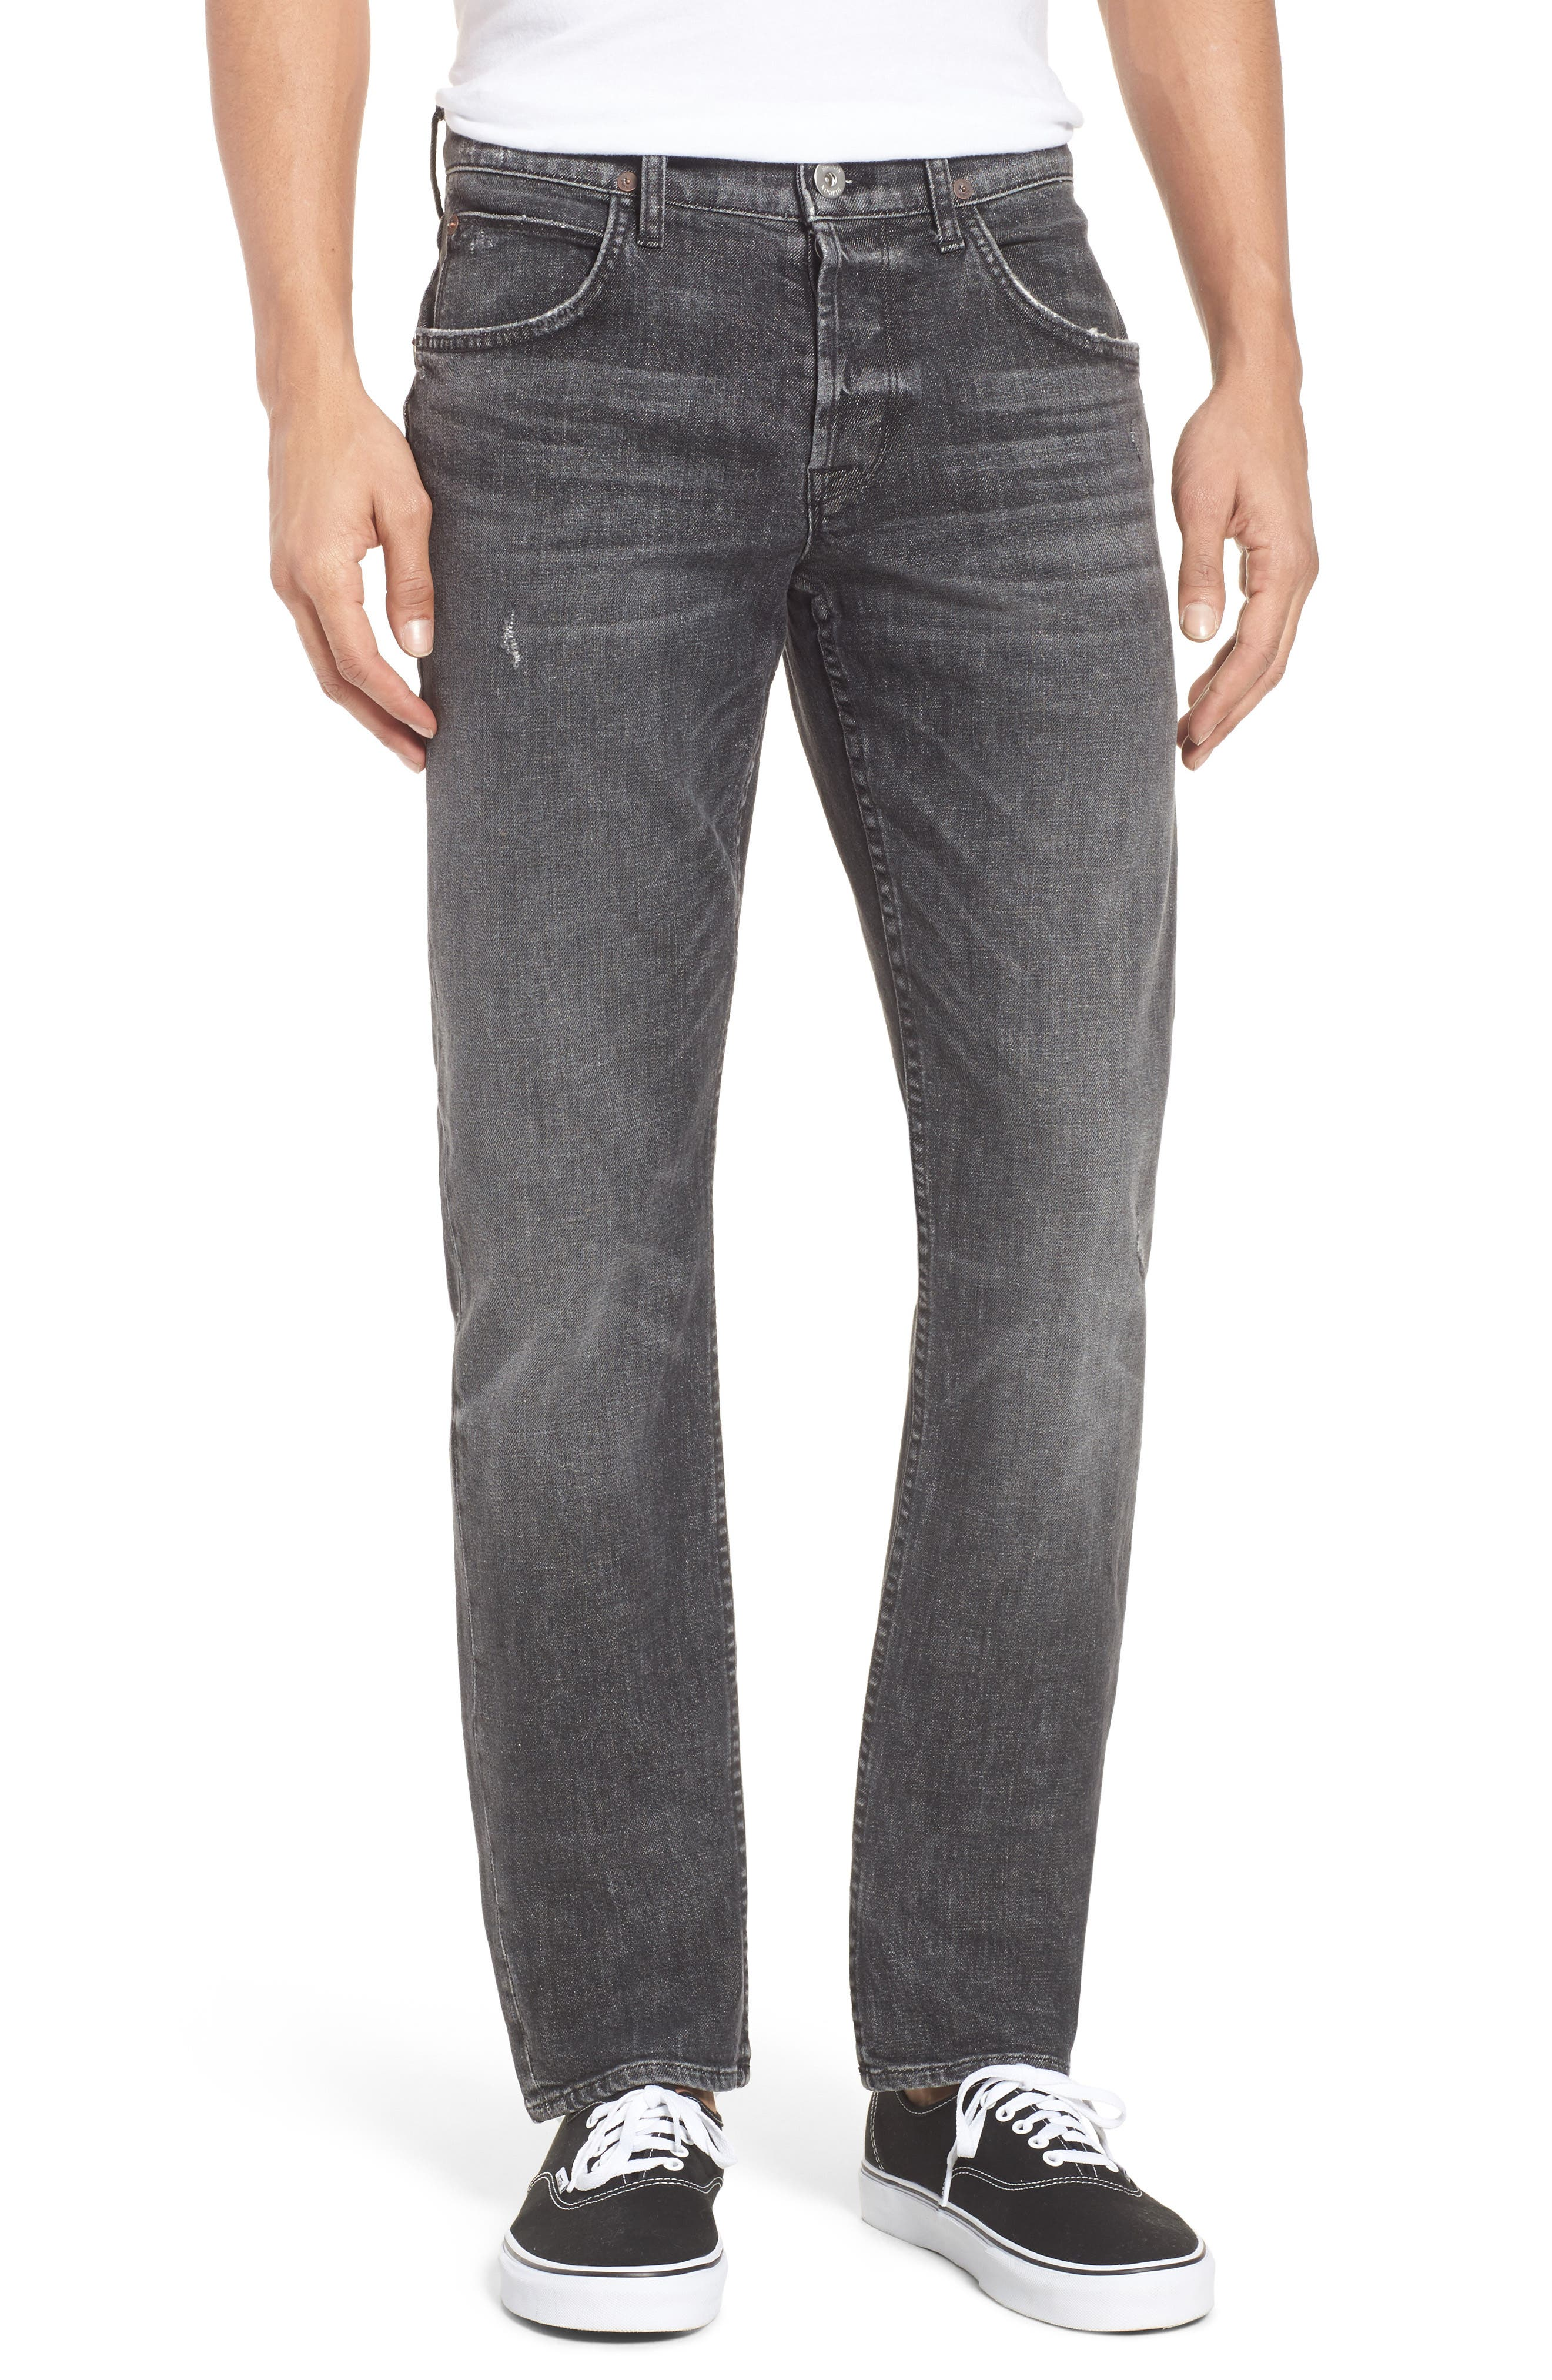 Blake Slim Fit Jeans,                             Main thumbnail 1, color,                             400